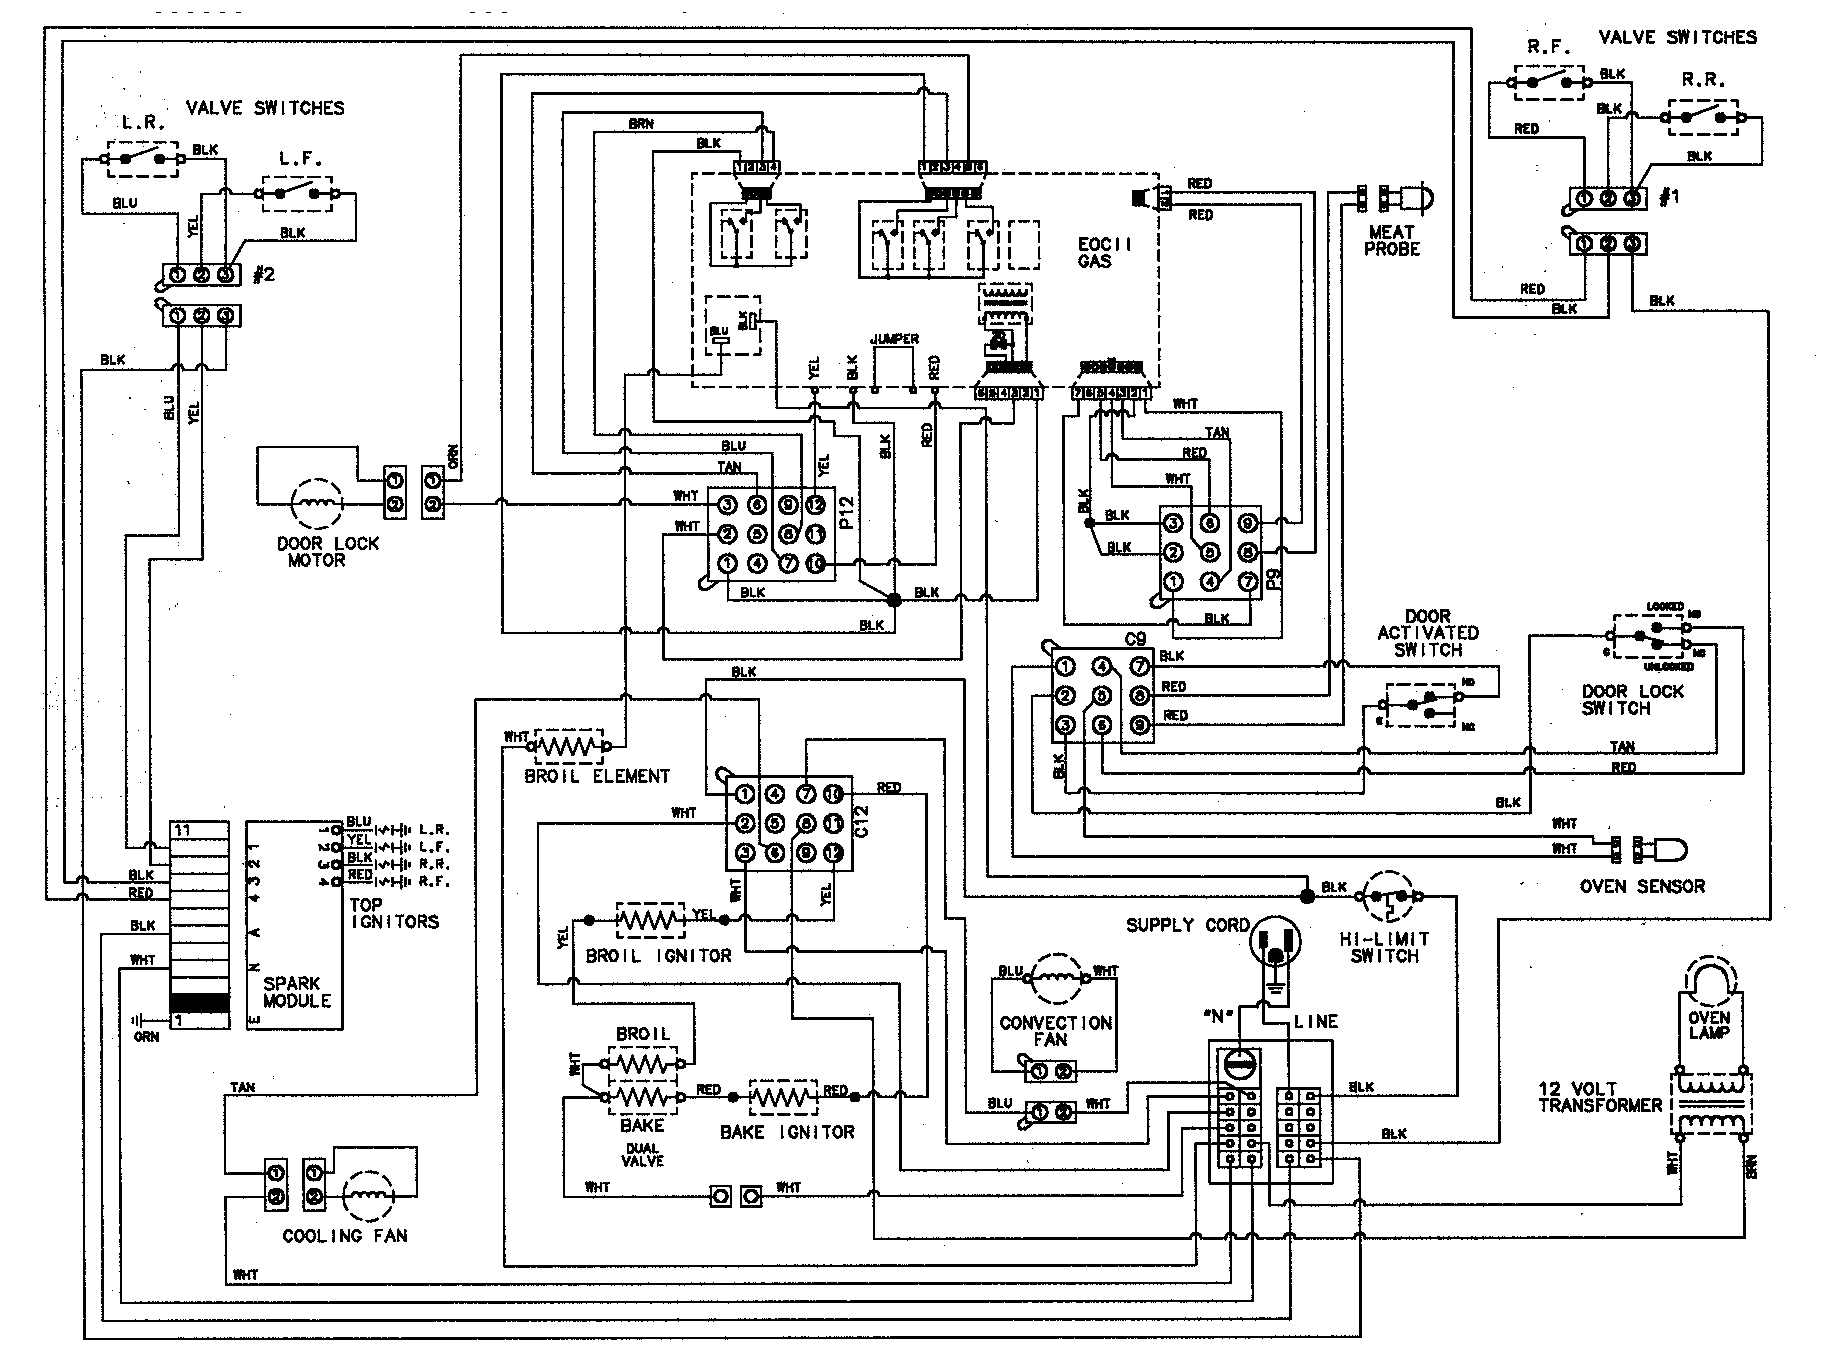 Jenn Air S136 Wiring Diagram : 28 Wiring Diagram Images